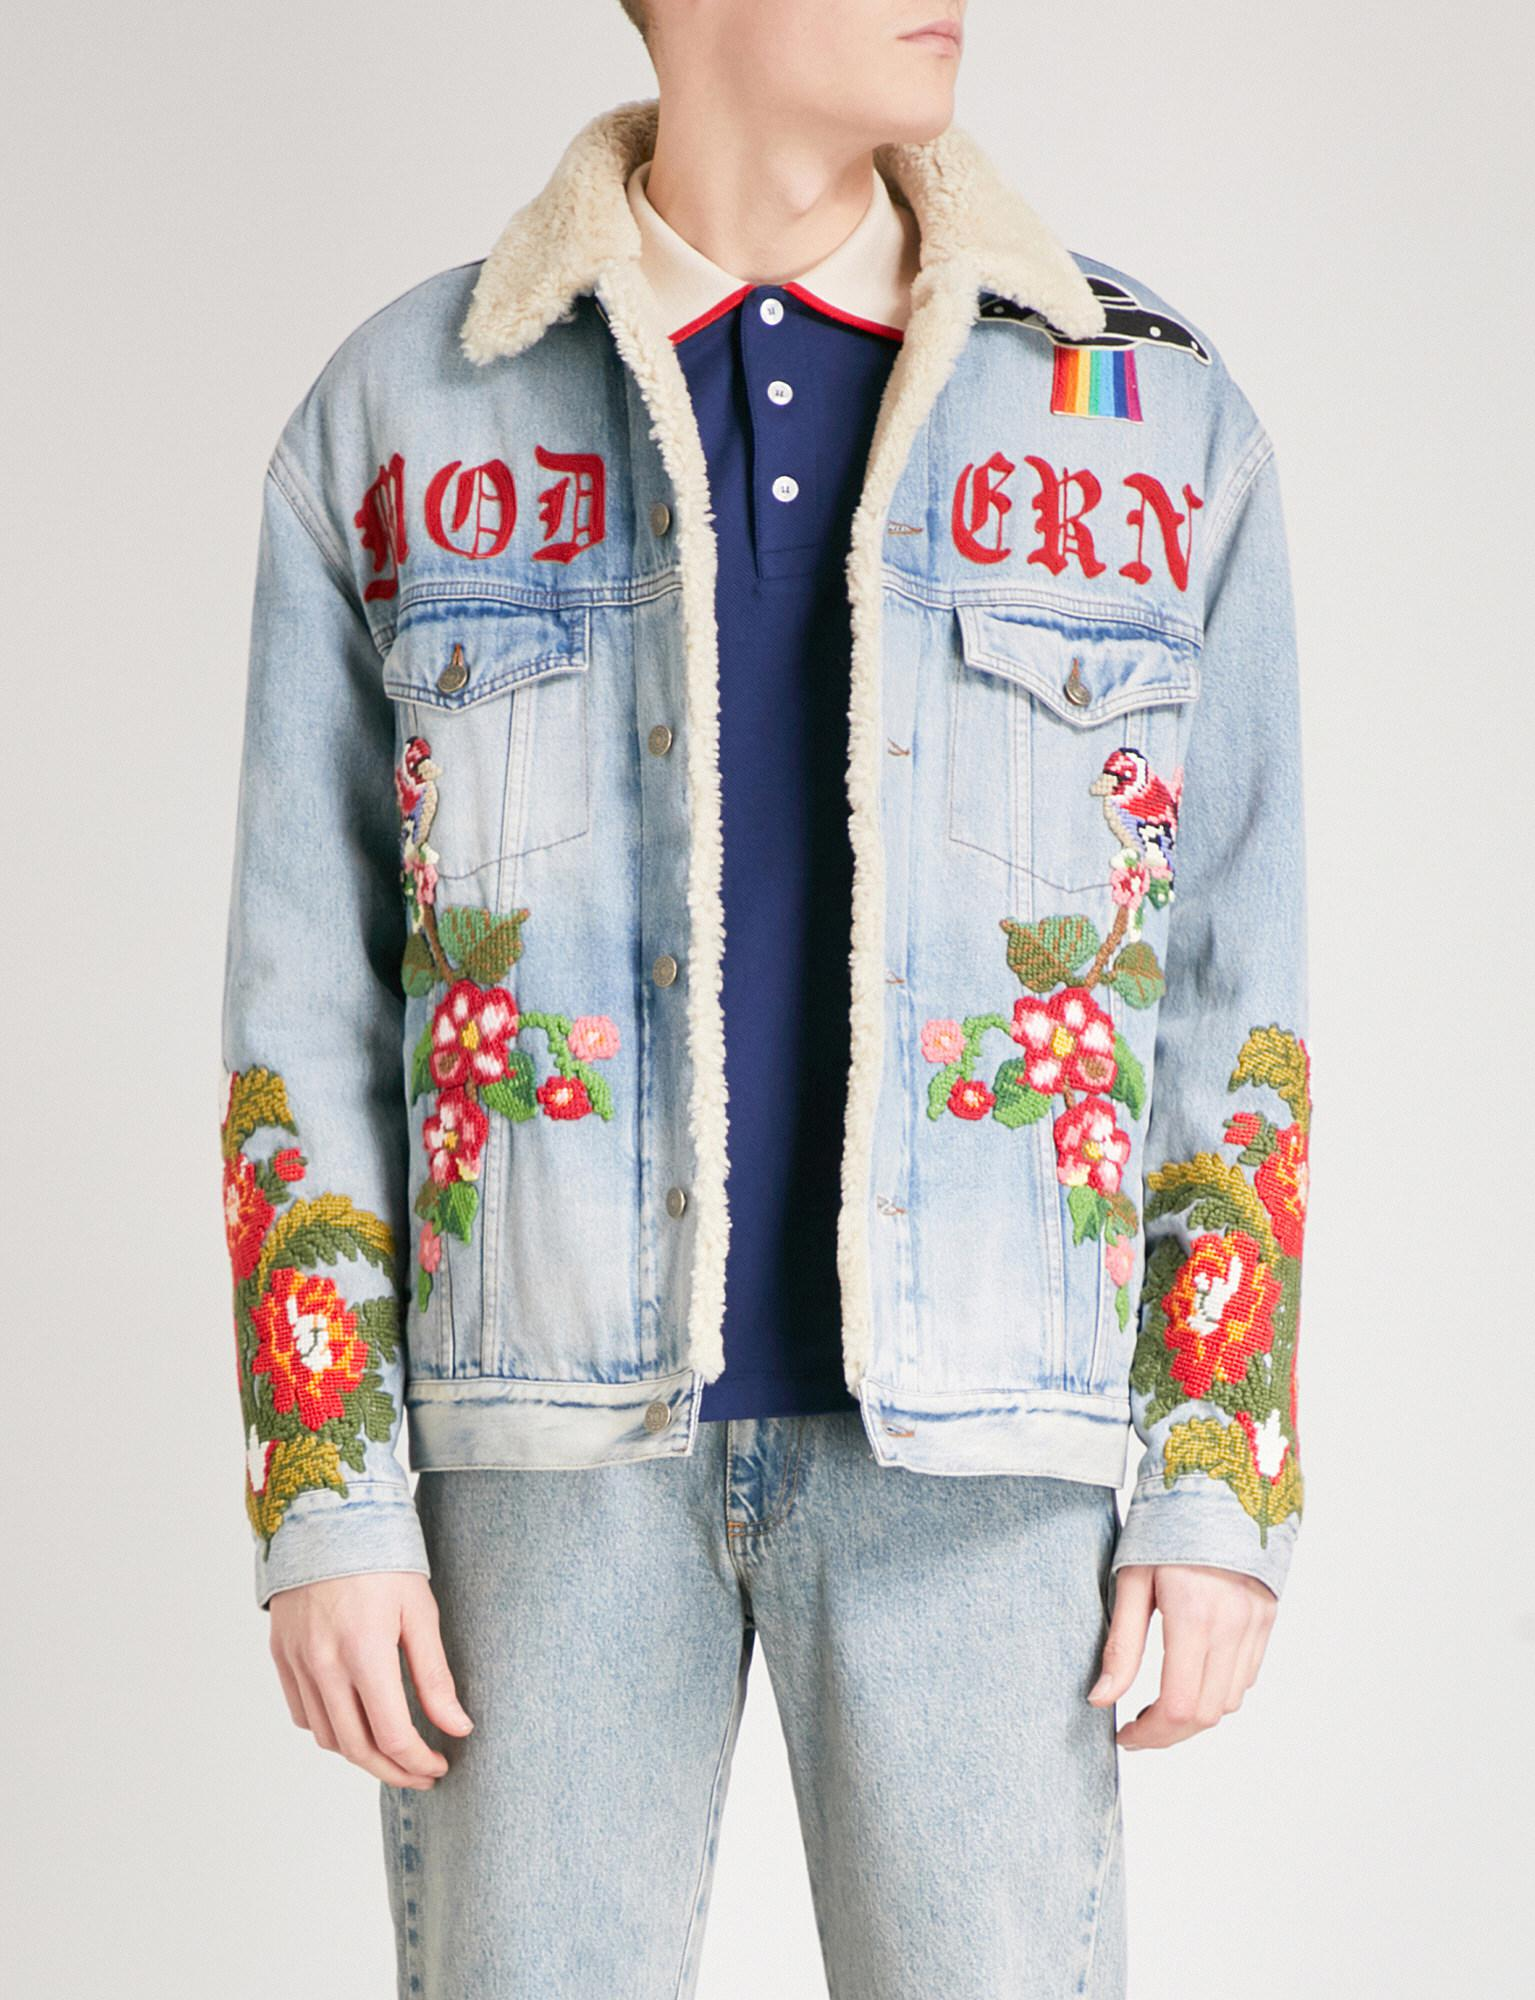 1393af0d4ad7 Lyst - Gucci Embroidered Denim Jacket in Blue for Men